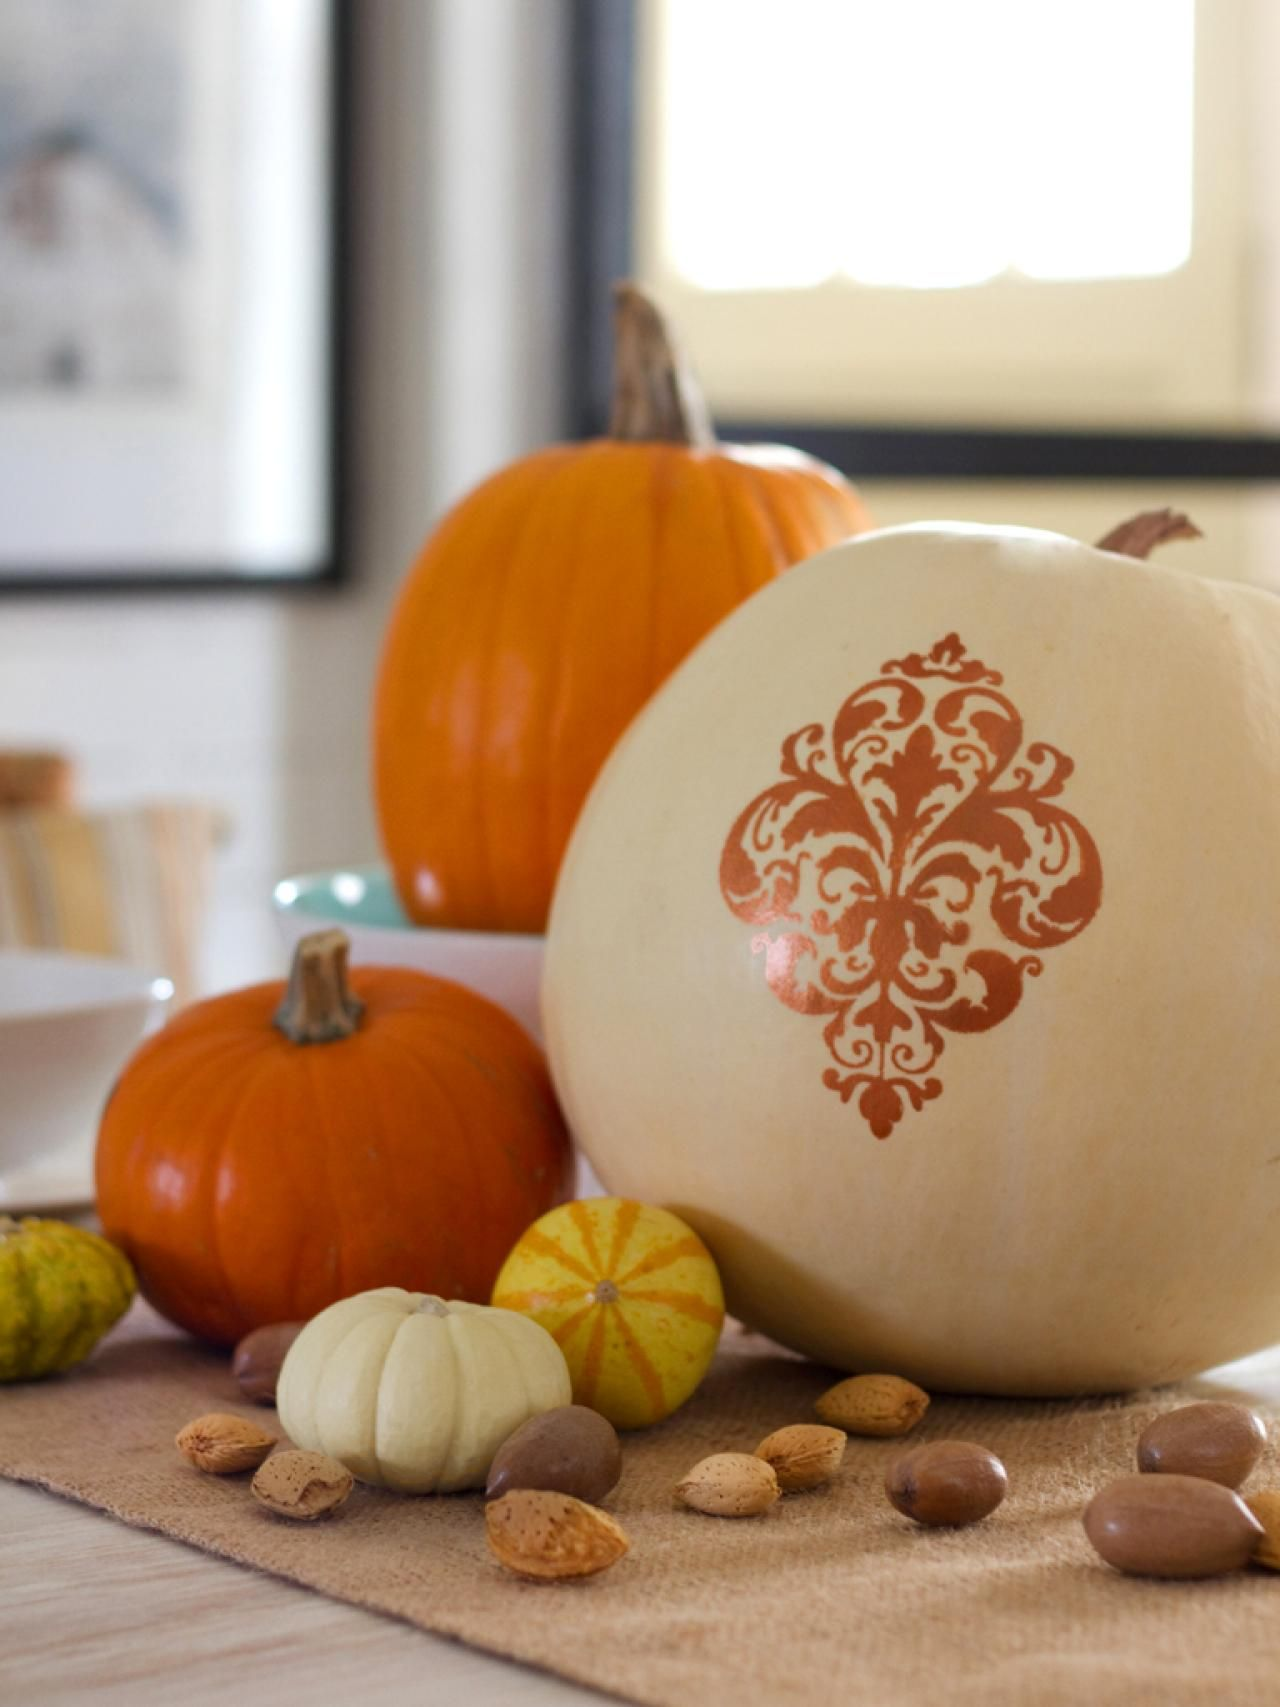 Add A Touch Of Class To Your Pumpkin This Year